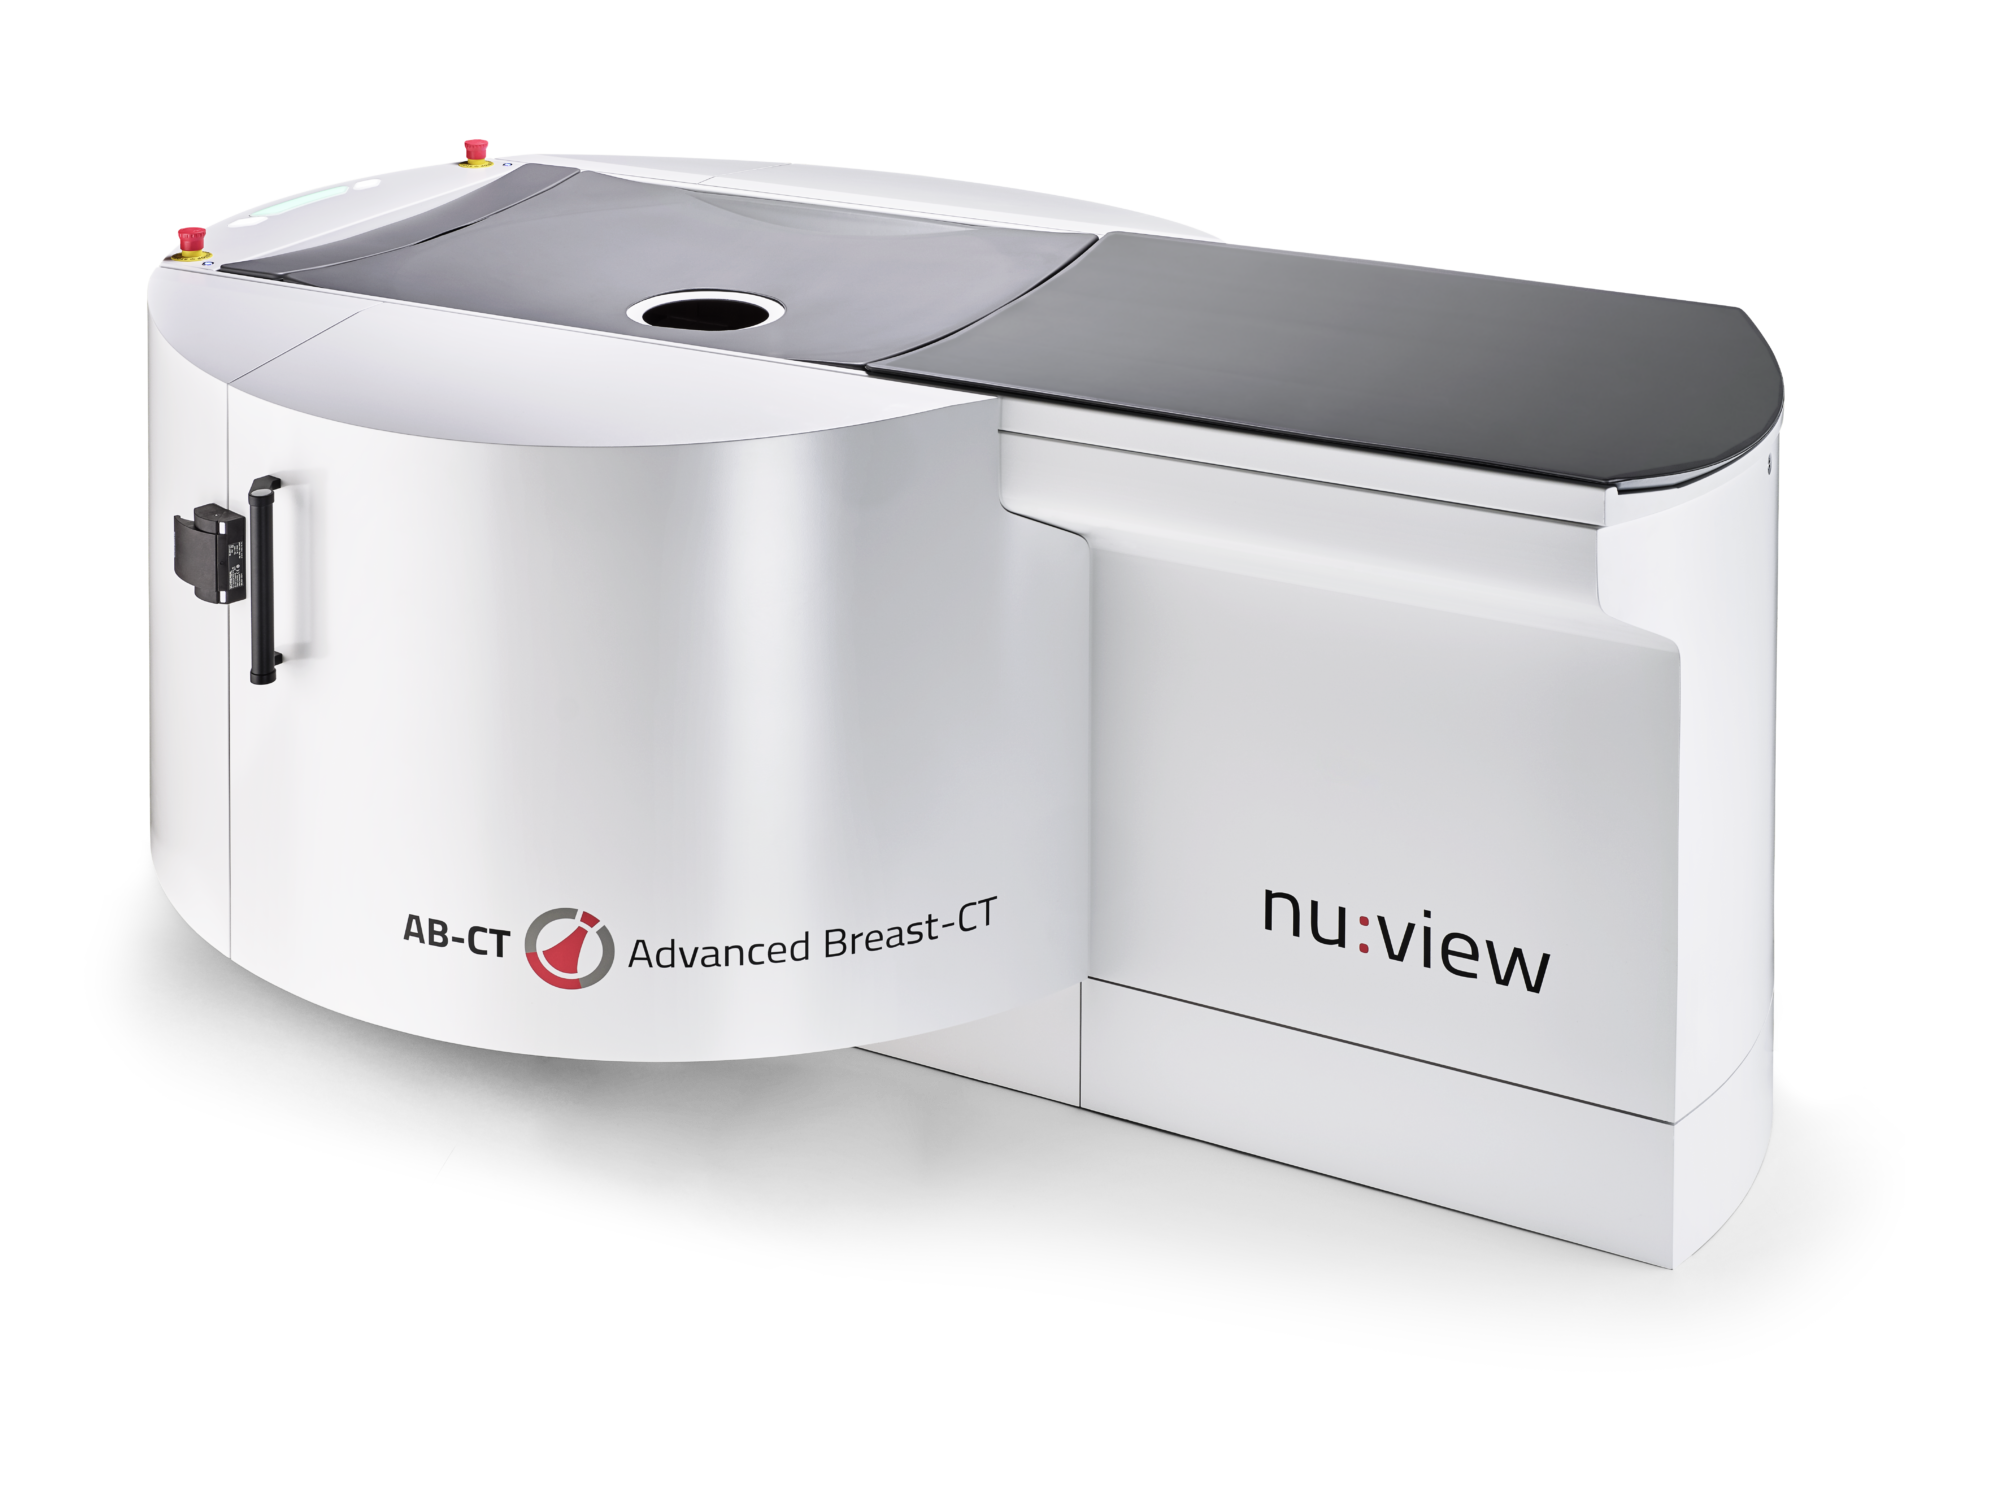 Image of nu:view breast ct scanner